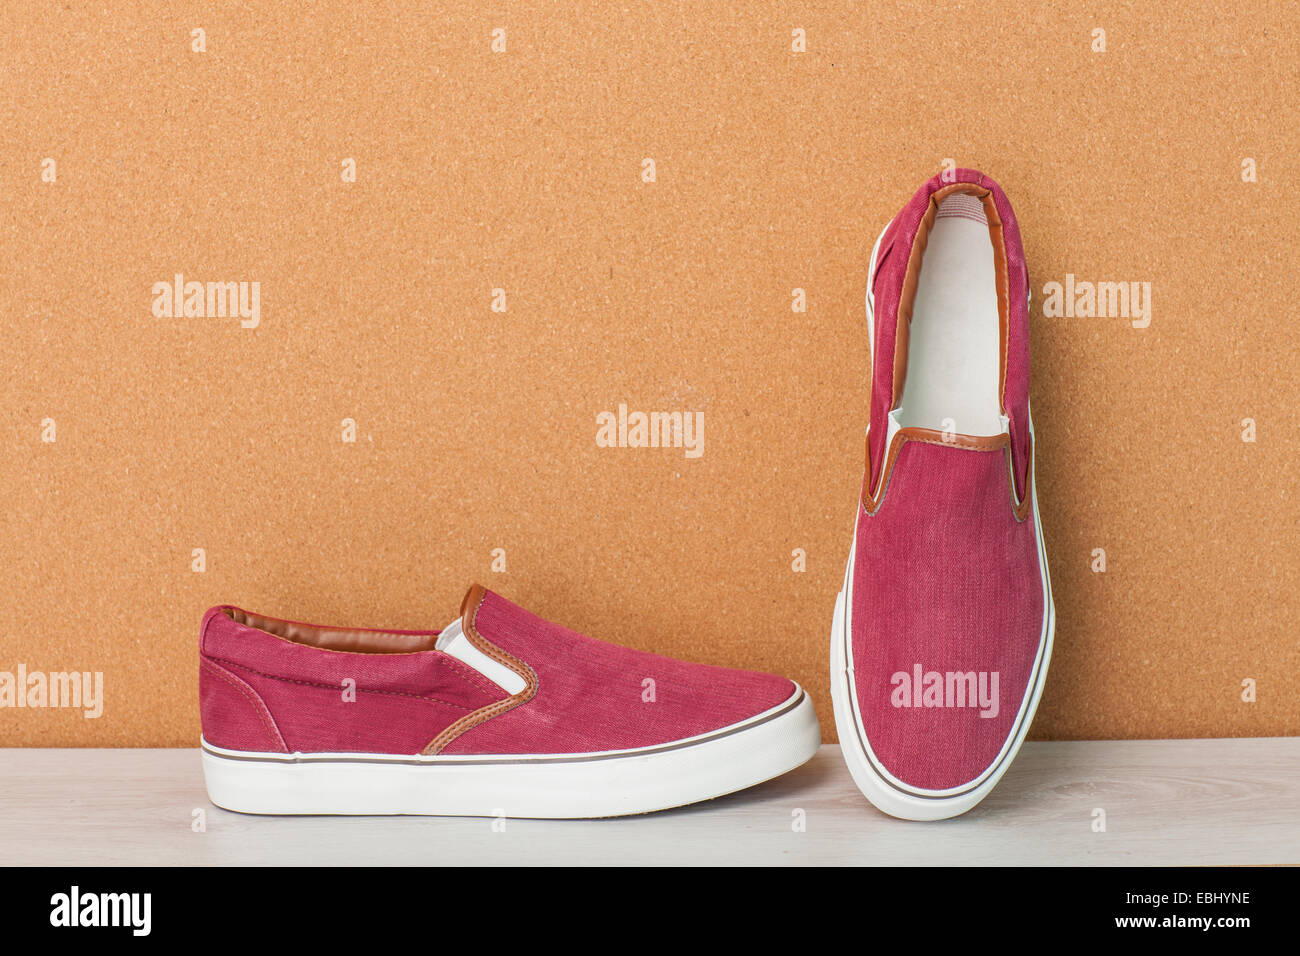 f956121a1e Vans Shoes Stock Photos   Vans Shoes Stock Images - Alamy